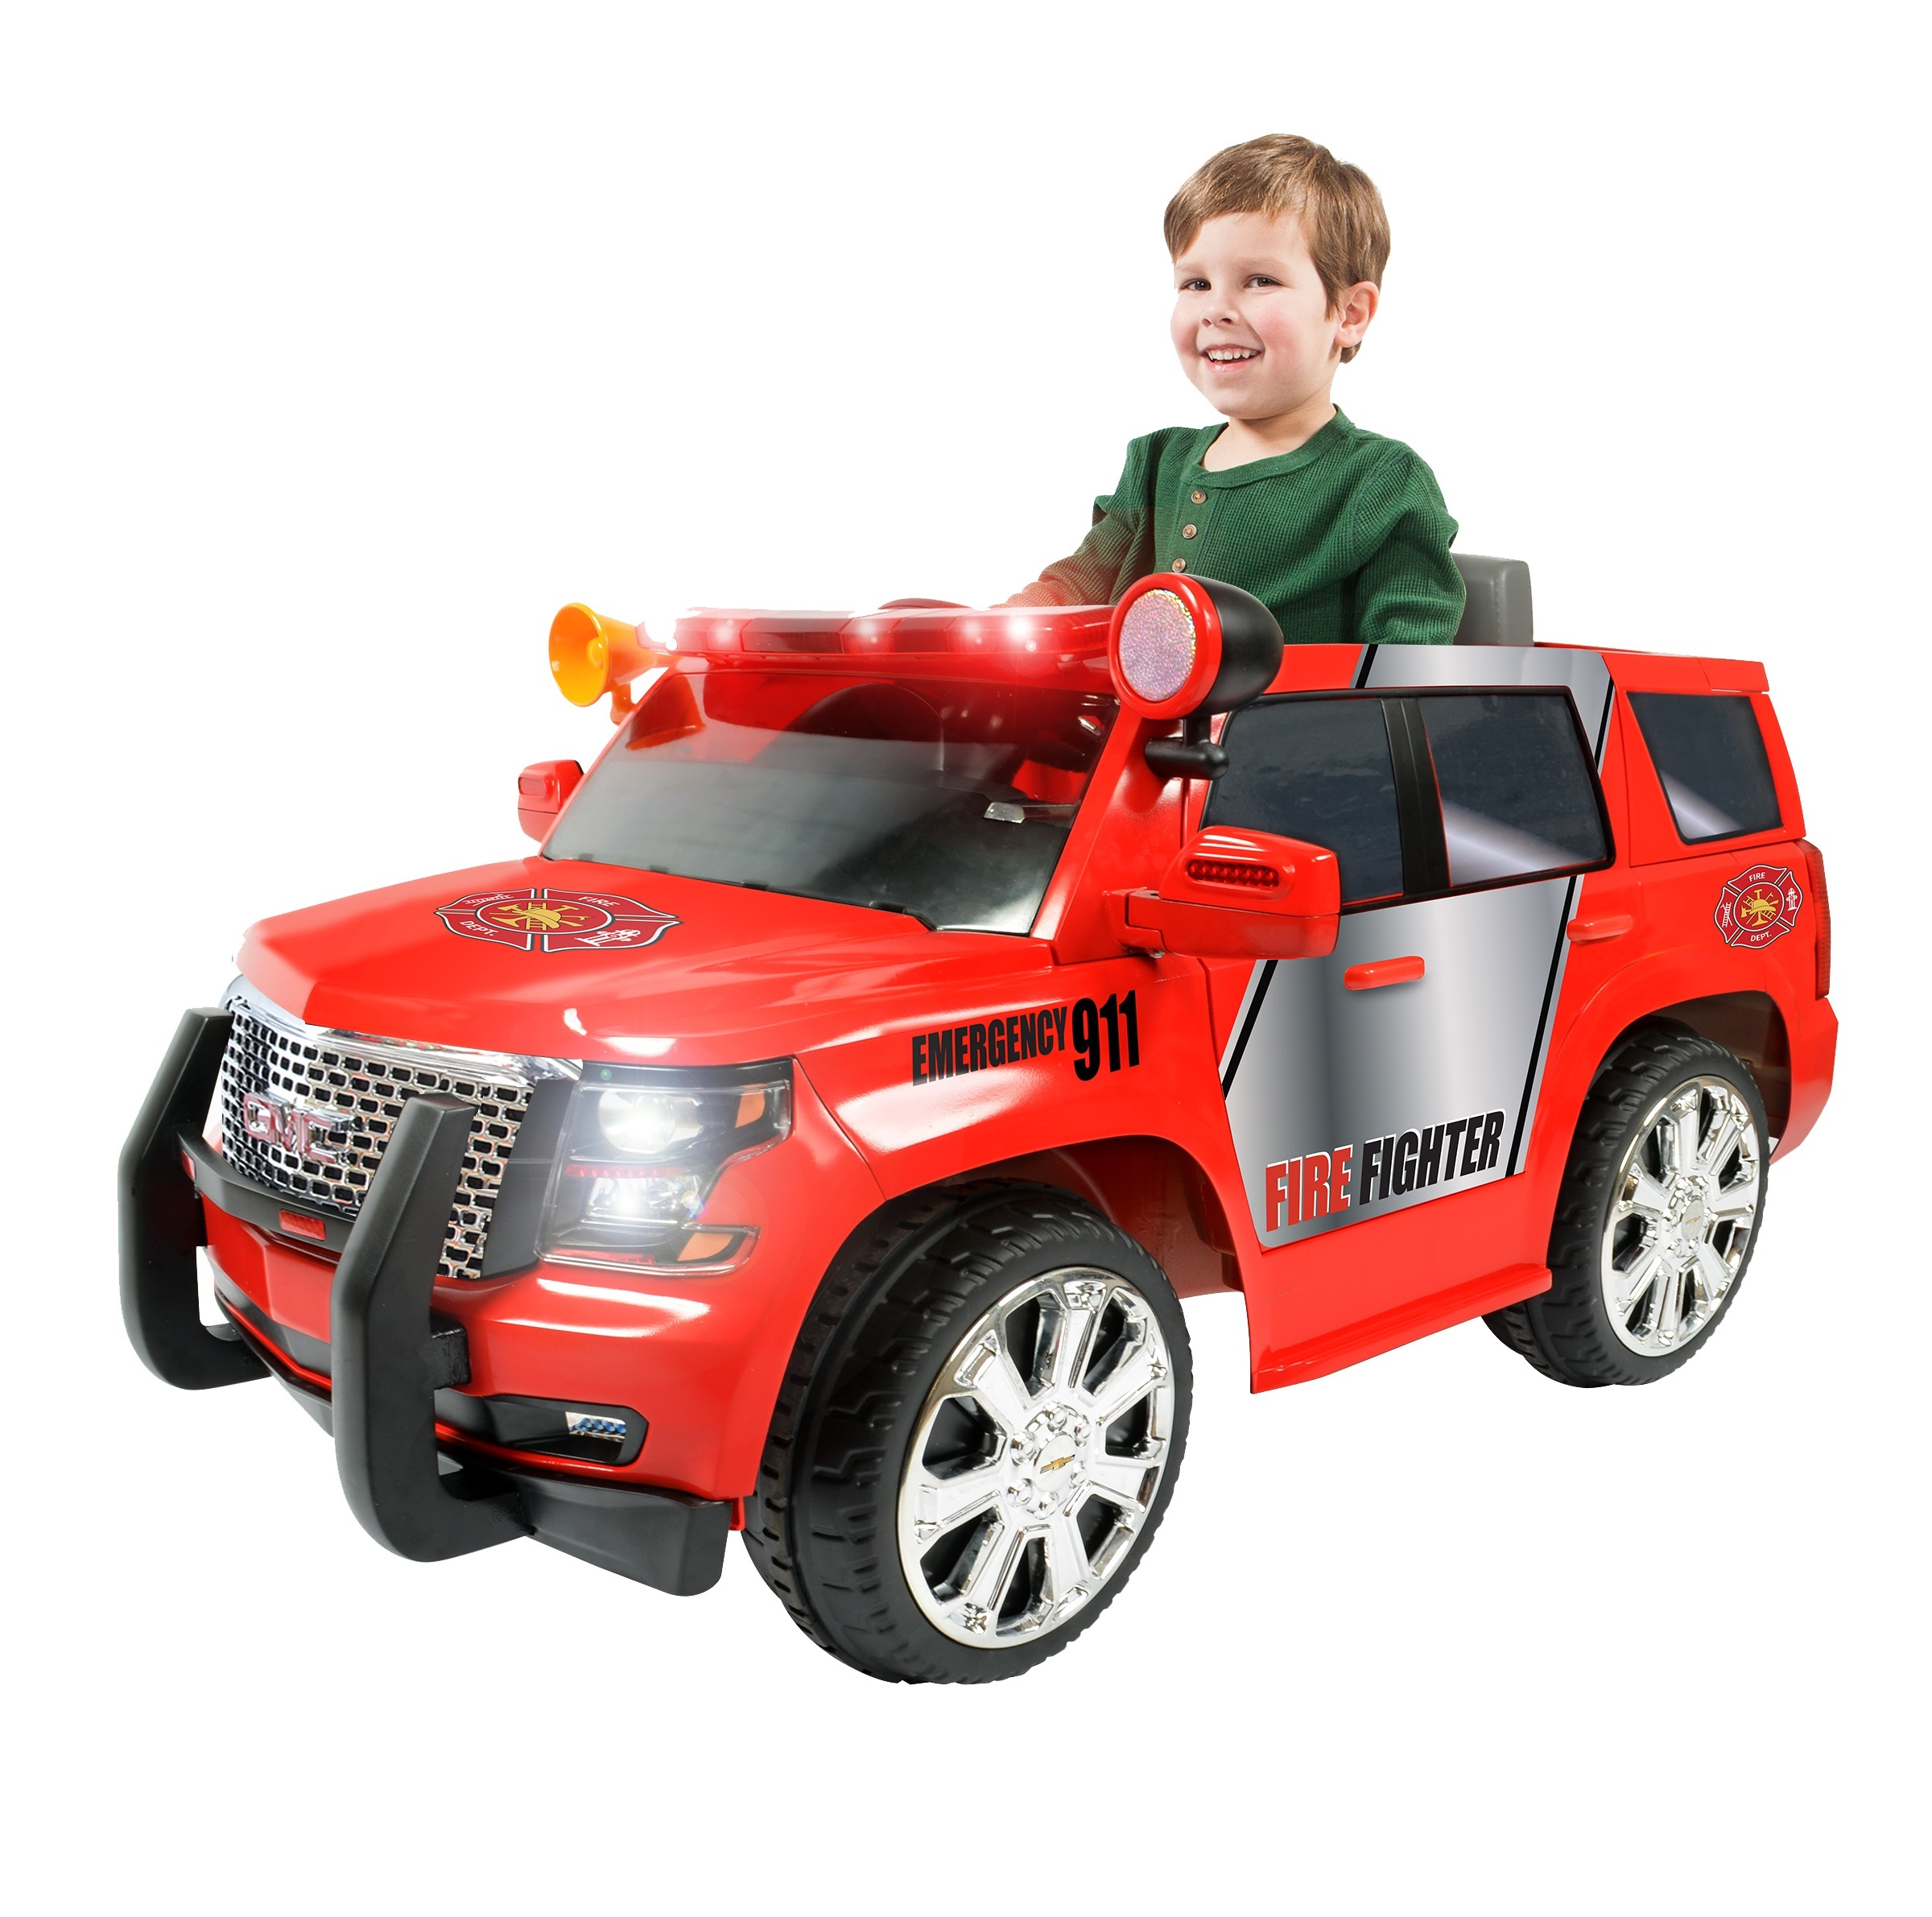 Rollplay 6 Volt GMC Yukon Denali Fire Rescue Ride On Toy, Battery-Powered Kid's Ride On Car